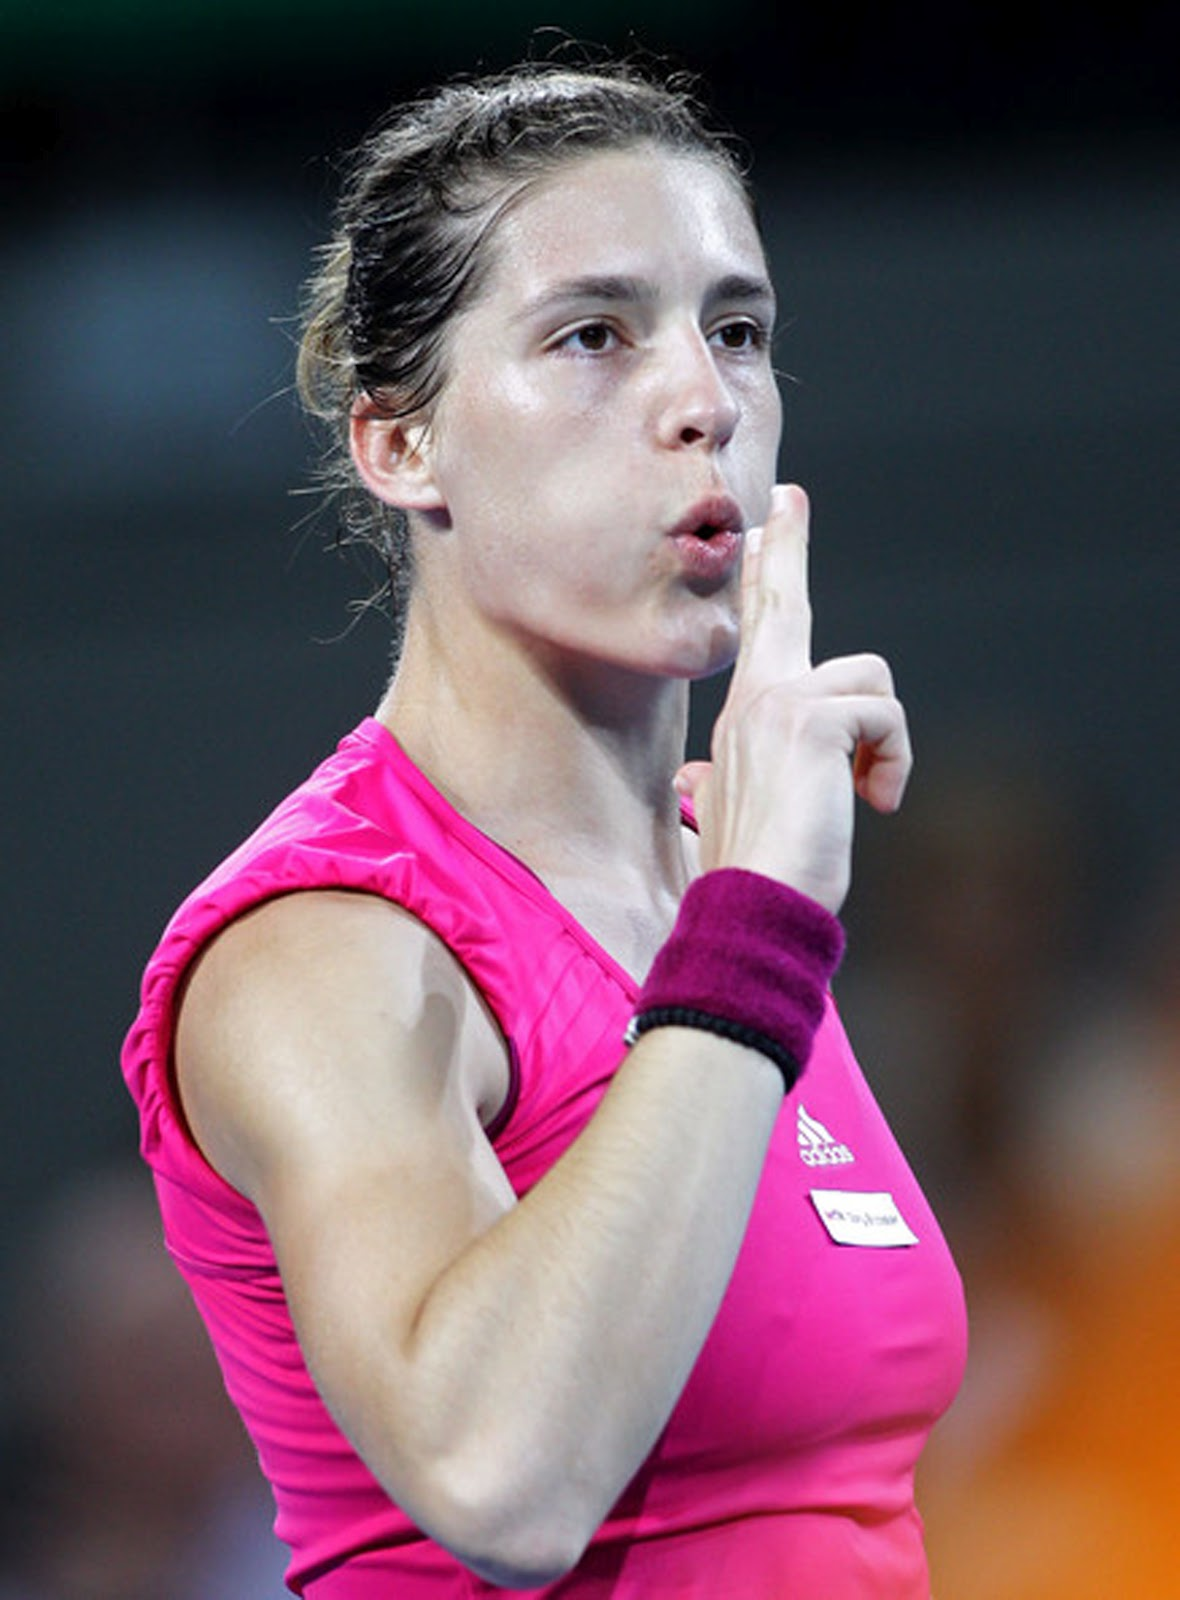 Andrea For Genesis Young Teen Julie: All Popular Sports Players Images: Andrea Petkovic